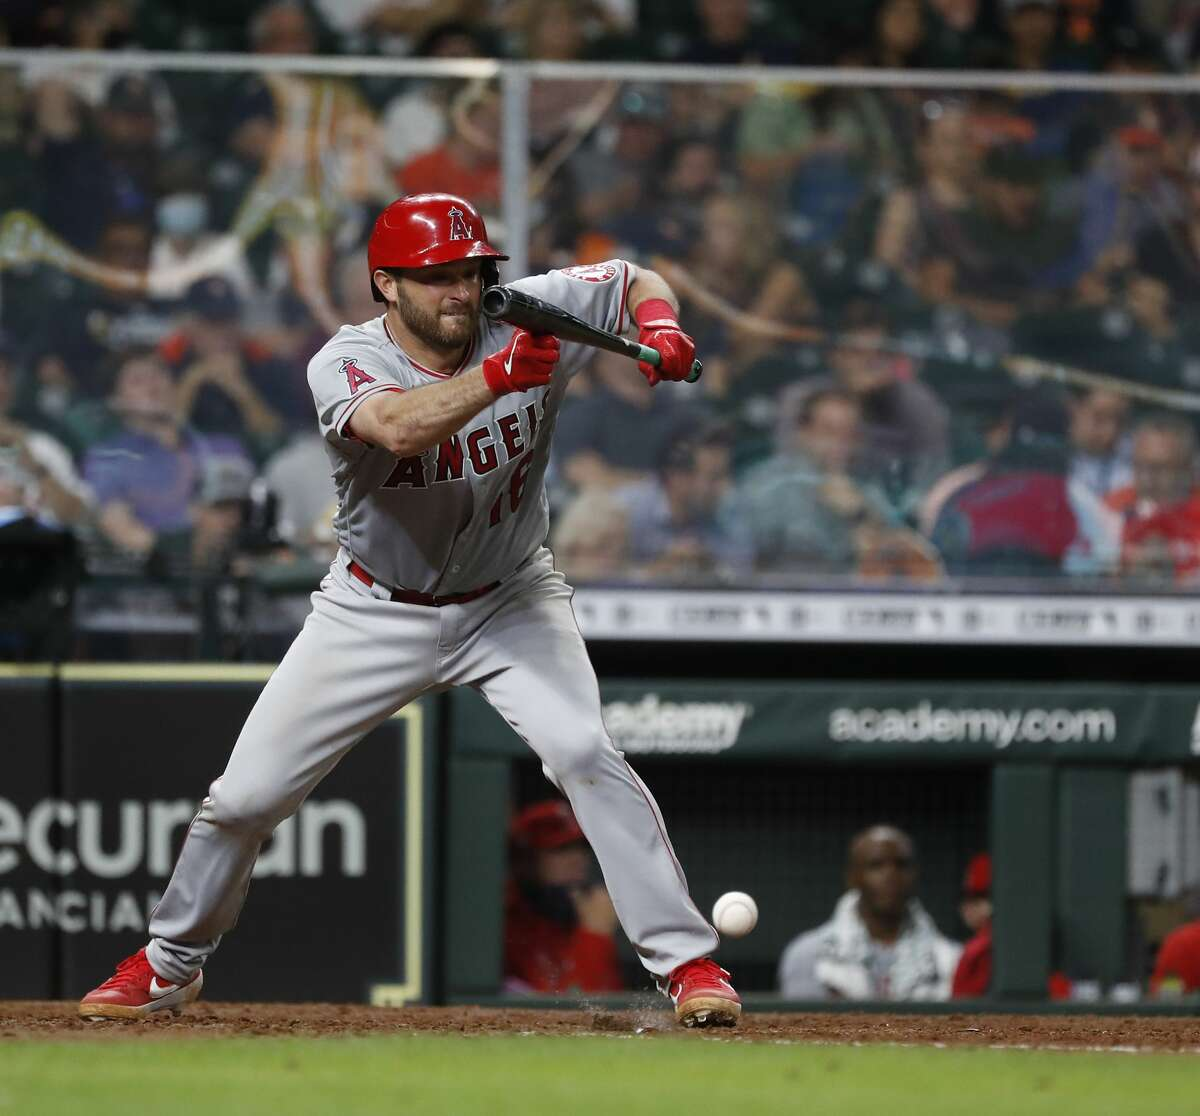 Drew Butera visited Minute Maid Park earlier this season with the Angels. Now, he's with the Astros on a minor league deal.